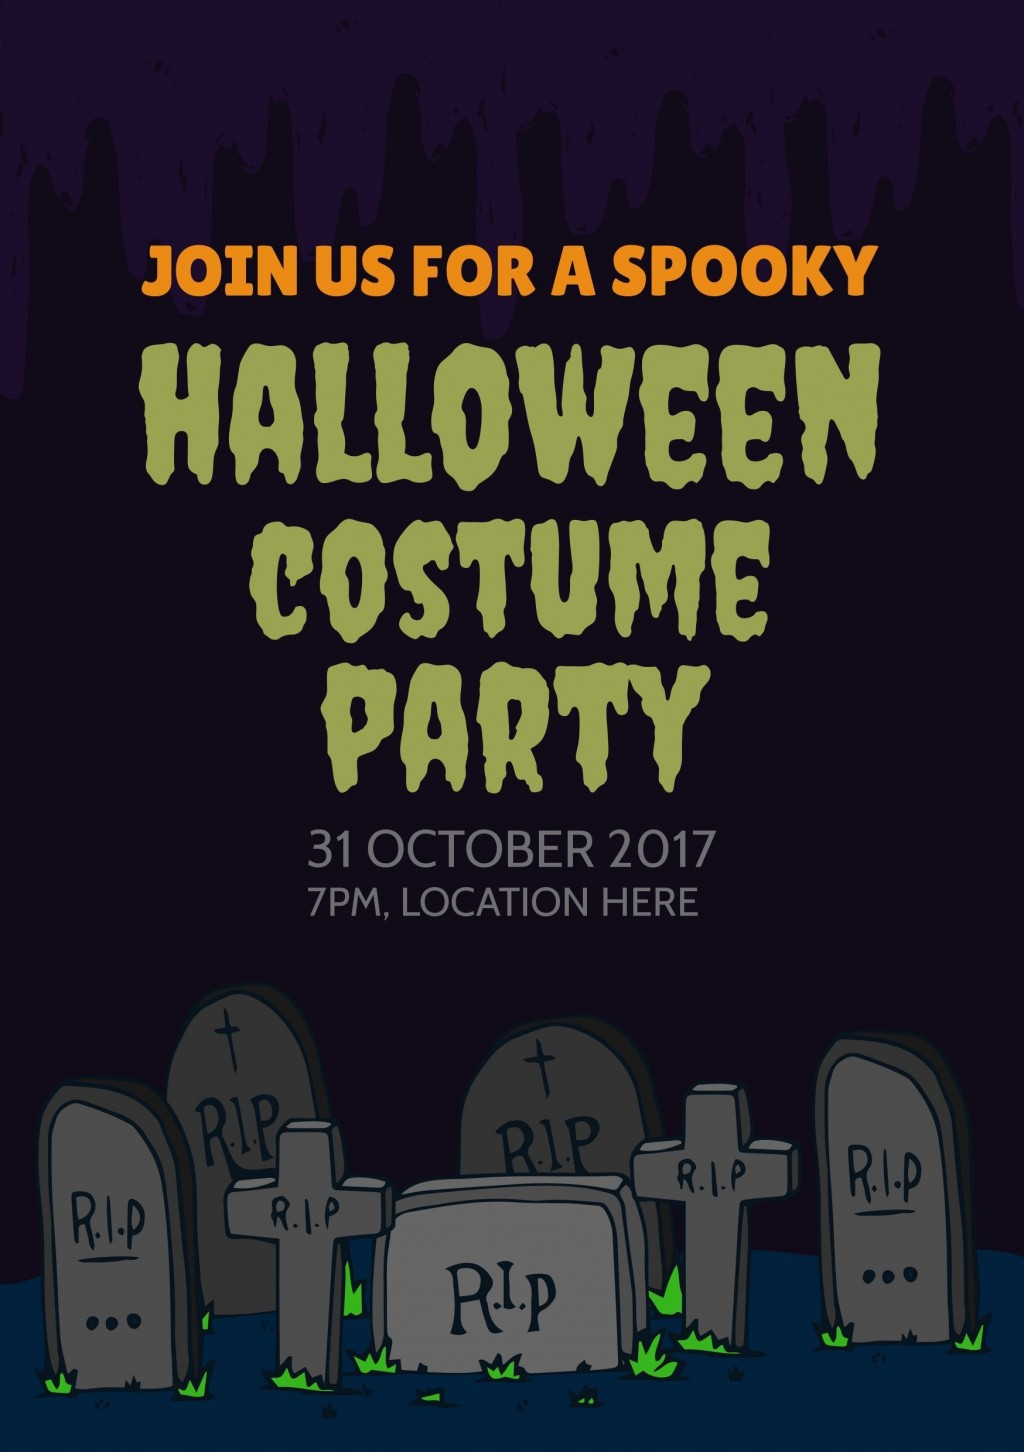 004 Exceptional Halloween Party Invite Template High Definition  Templates - Free Printable Spooky Invitation BirthdayLarge